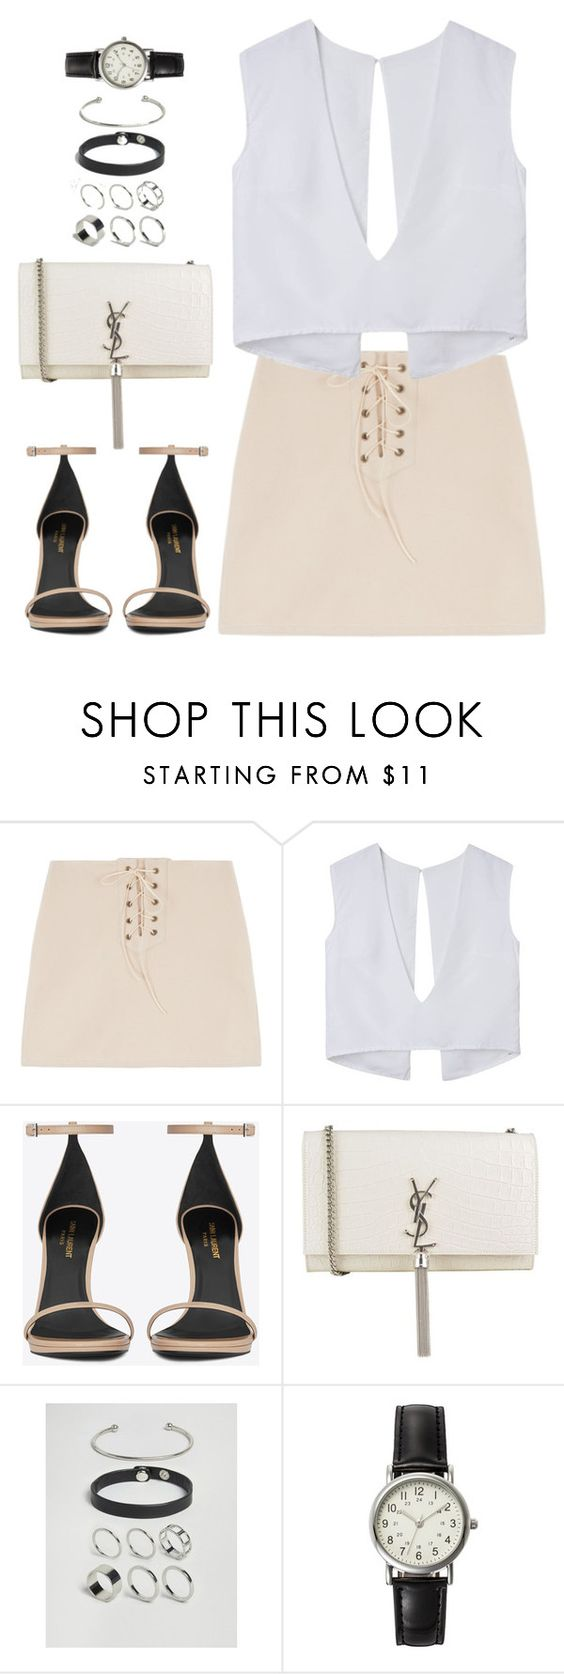 """""""Untitled#4578"""" by fashionnfacts ❤ liked on Polyvore featuring Yves Saint Laurent, ASOS and FOSSIL"""